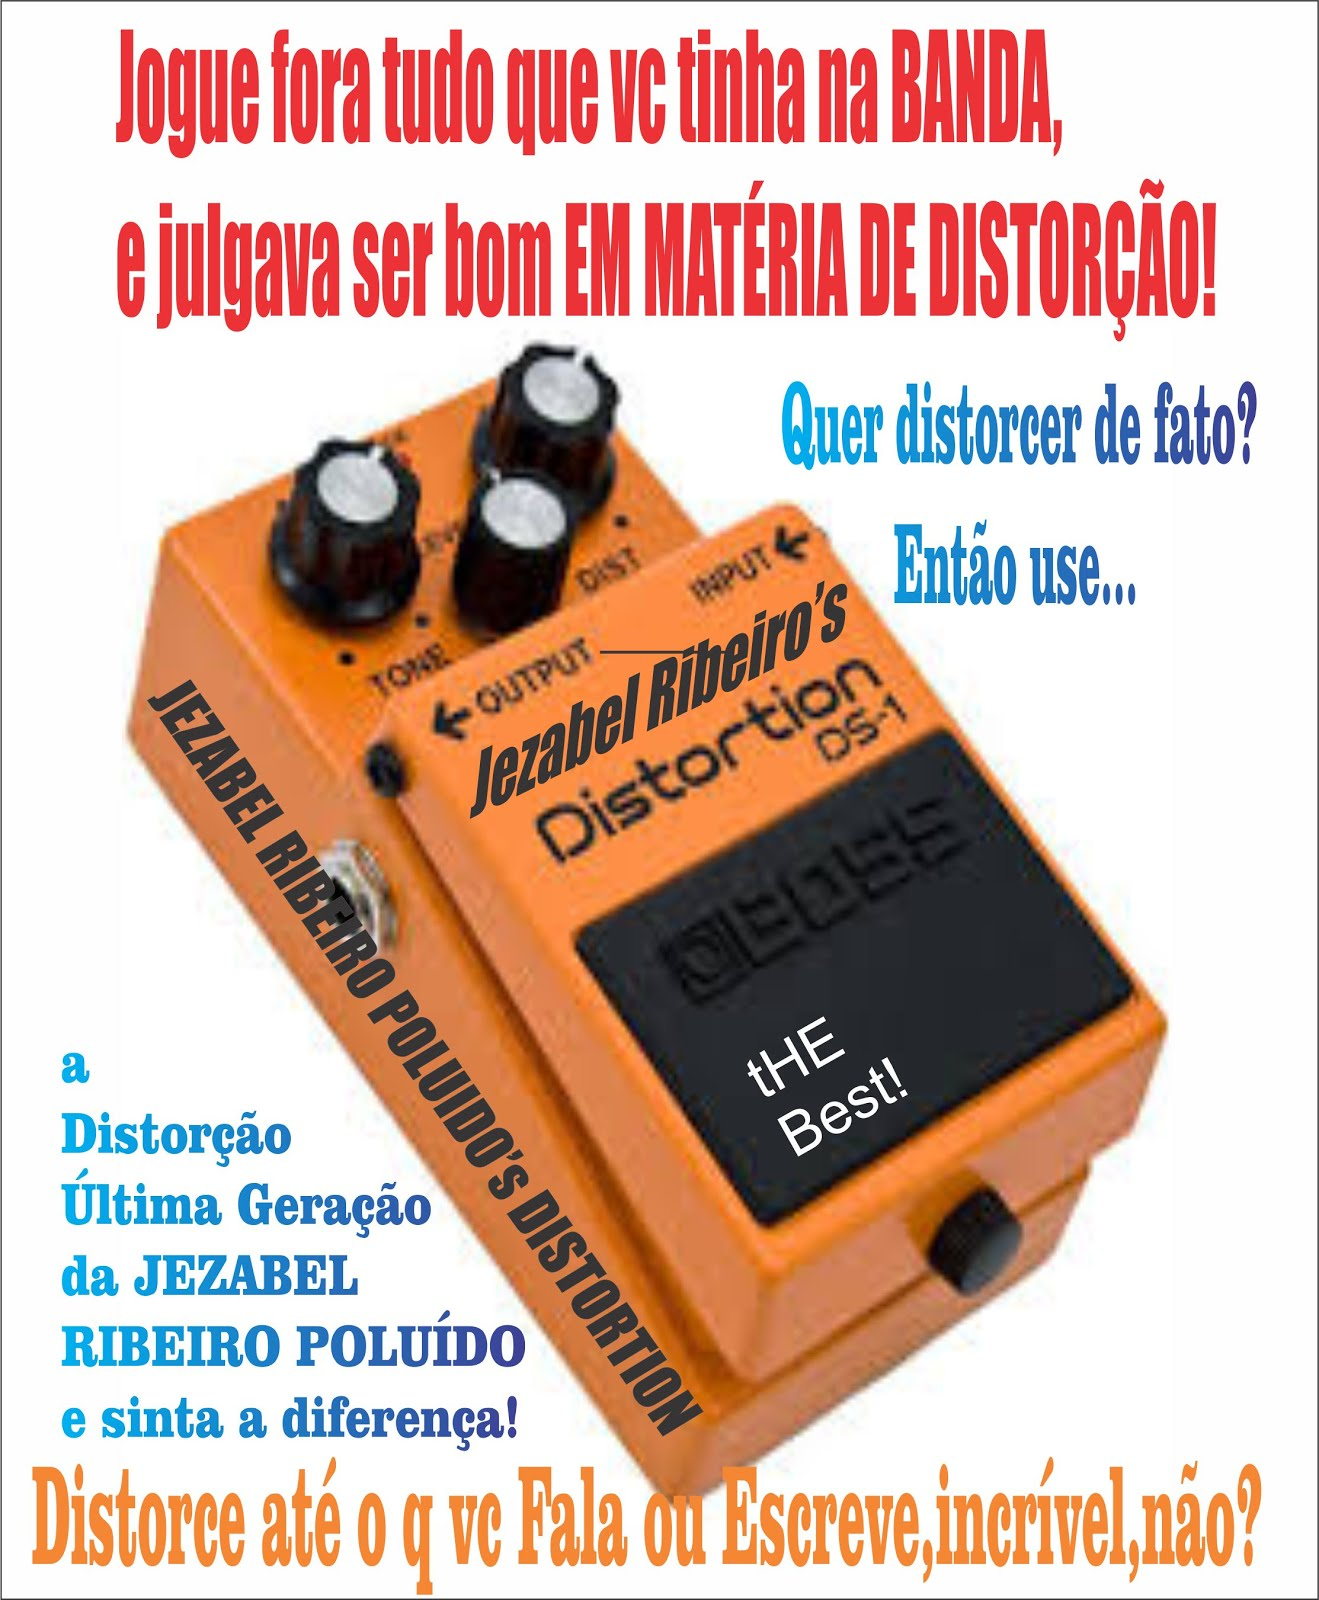 JEZABEL RIBEIRO POUIDO'S DISTORTION